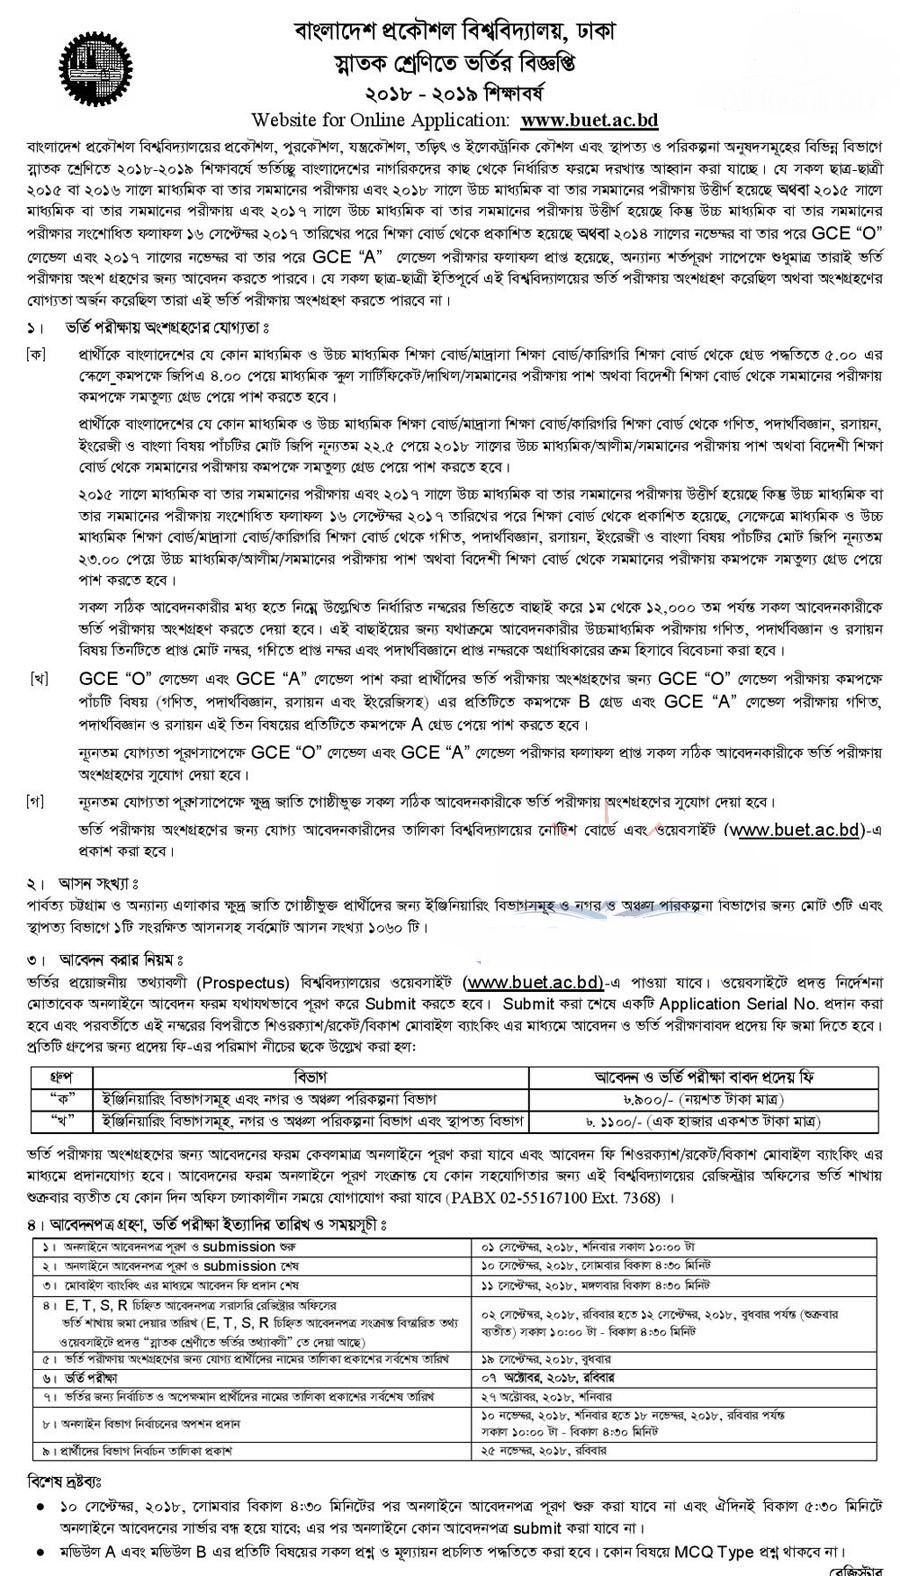 BUET Admission Test Result 2018-19 Lists of Eligible Candidates Circular 2018